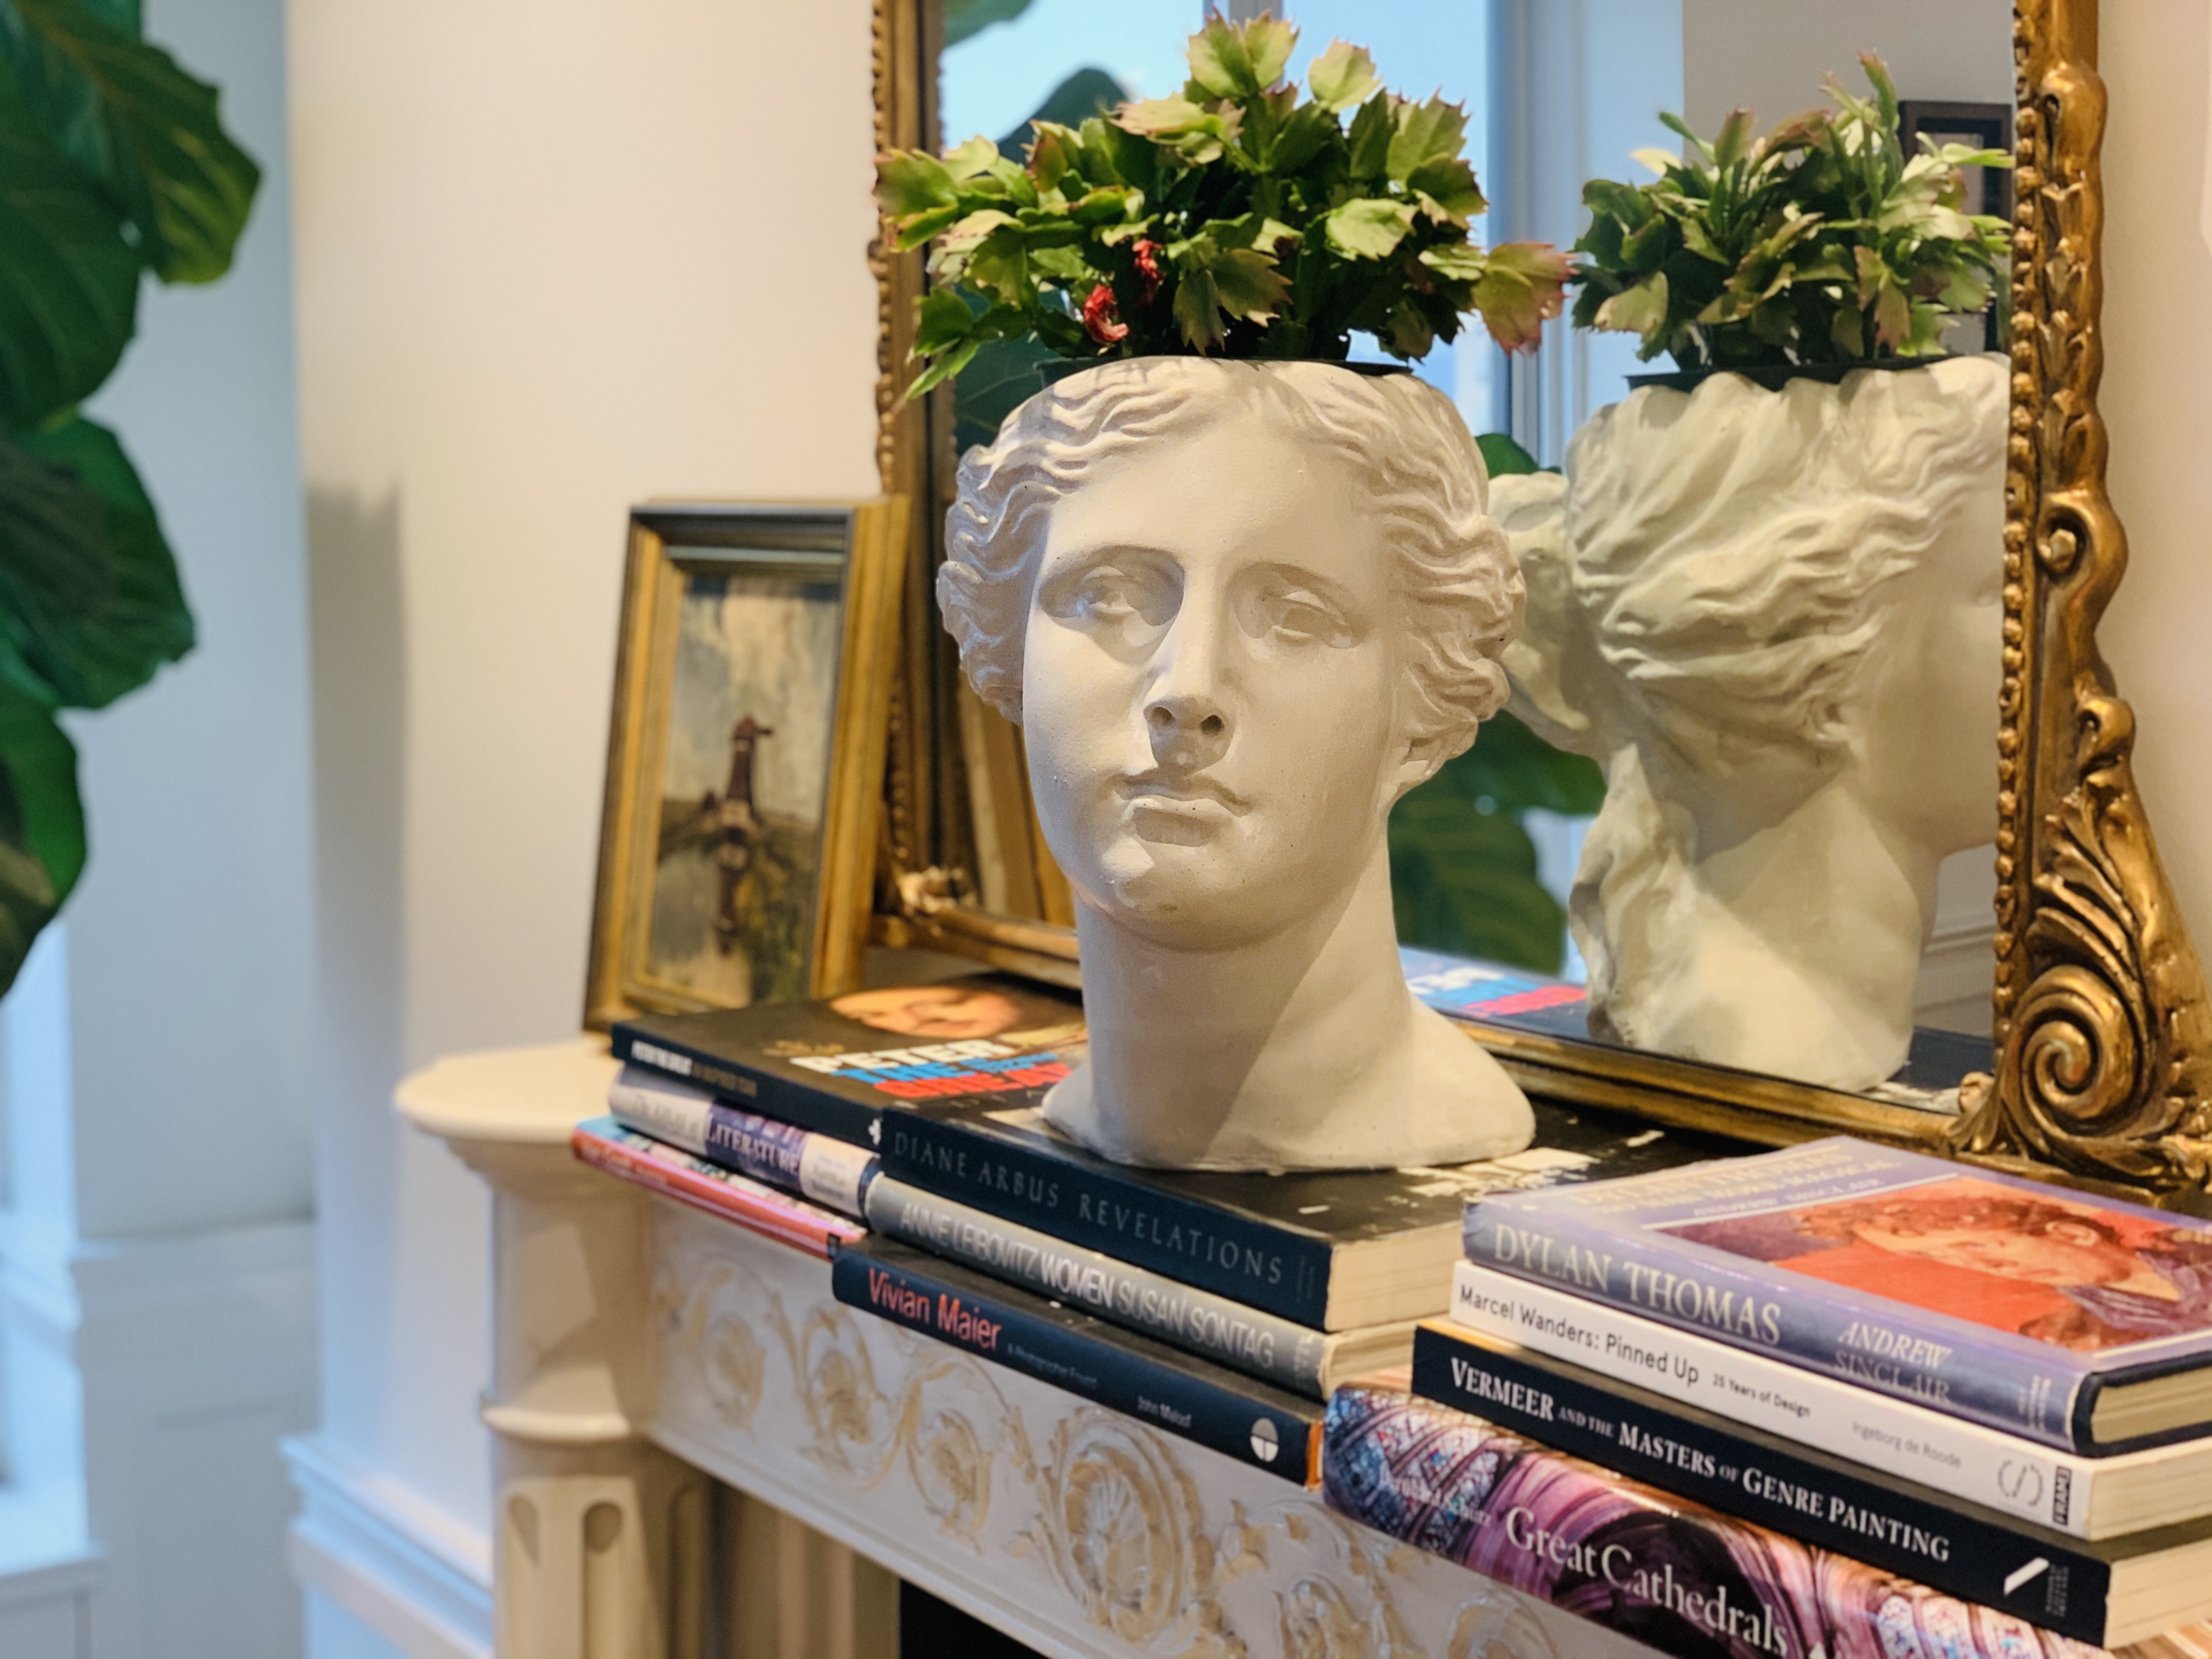 Planter bust on top of stack of coffee table books in front of mirror.